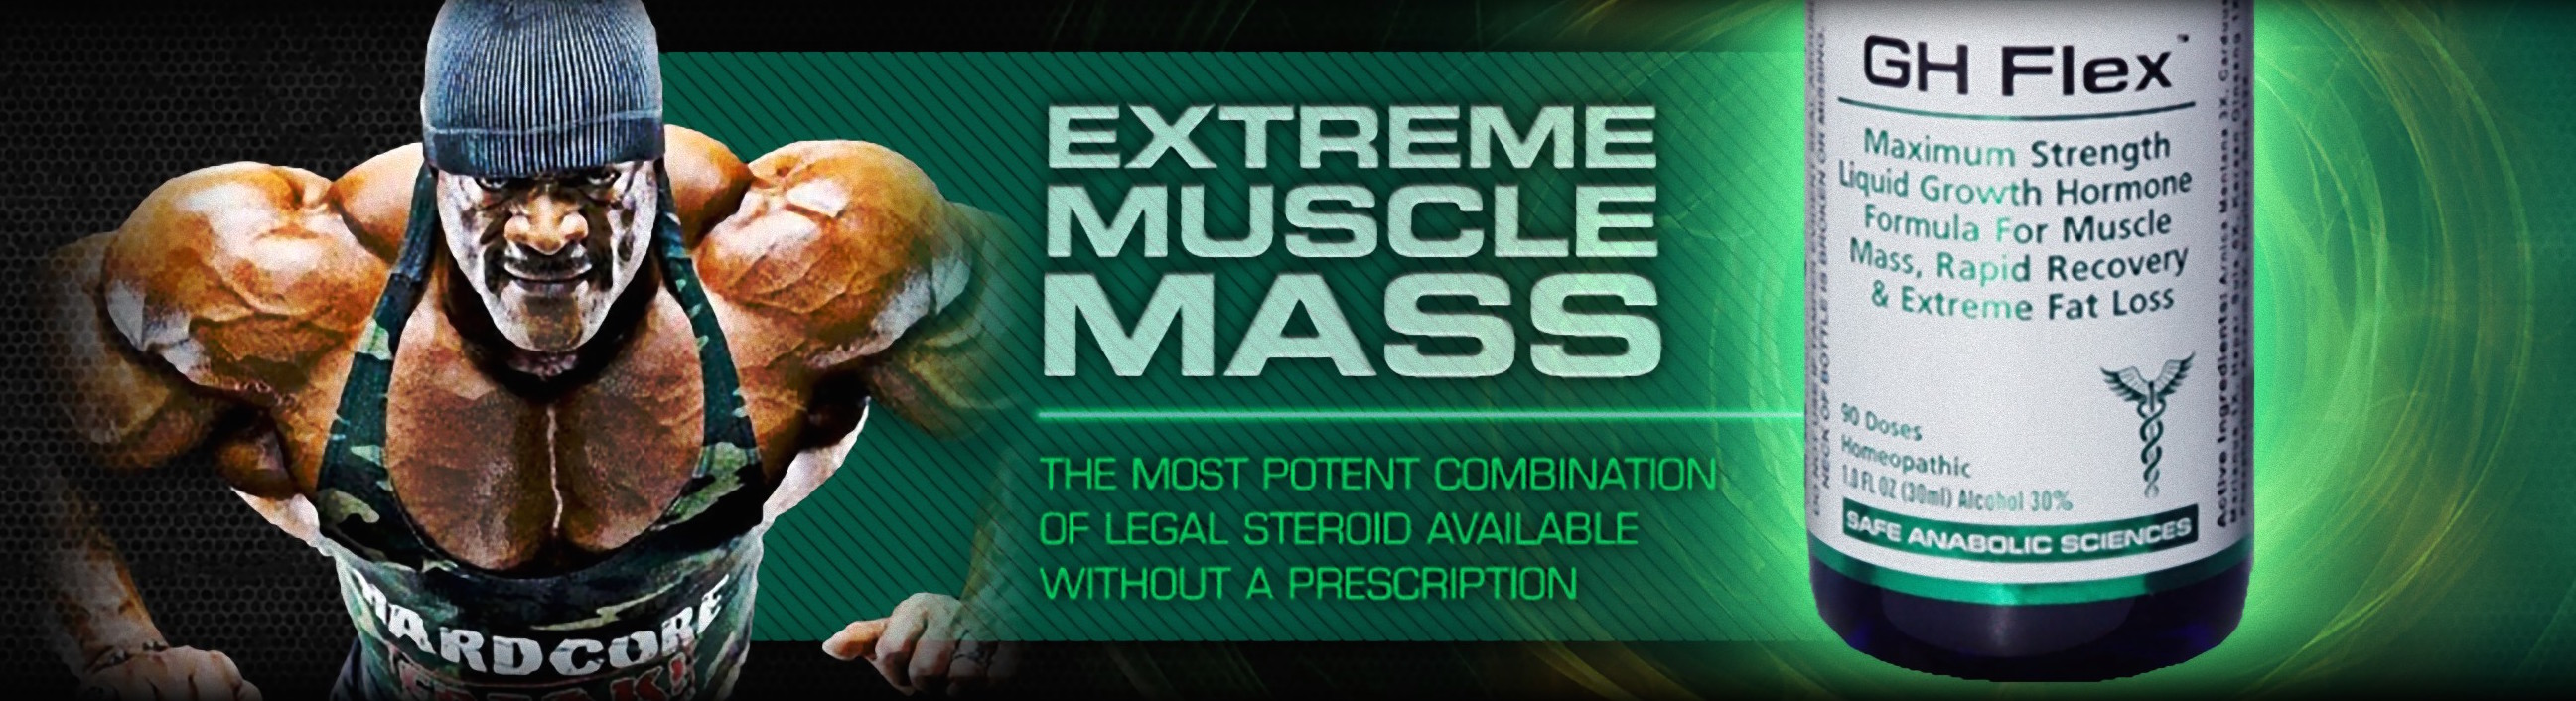 Extreme Muscle Mass